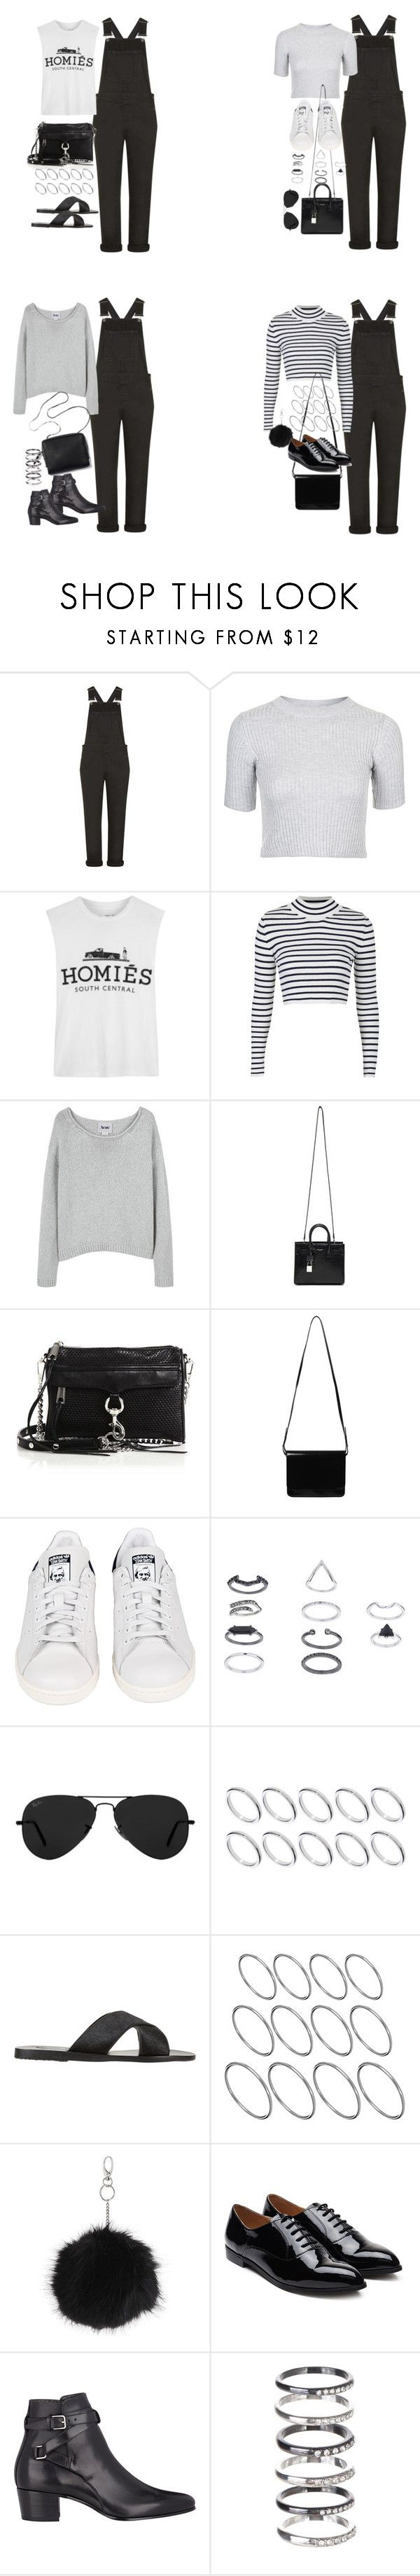 """""""outfits with black dungarees"""" by marym96 ❤ liked on Polyvore featuring Topshop, Brian Lichtenberg, Acne Studios, Yves Saint Laurent, Rebecca Minkoff, Monki, adidas, Ray-Ban, ASOS and Ancient Greek Sandals"""